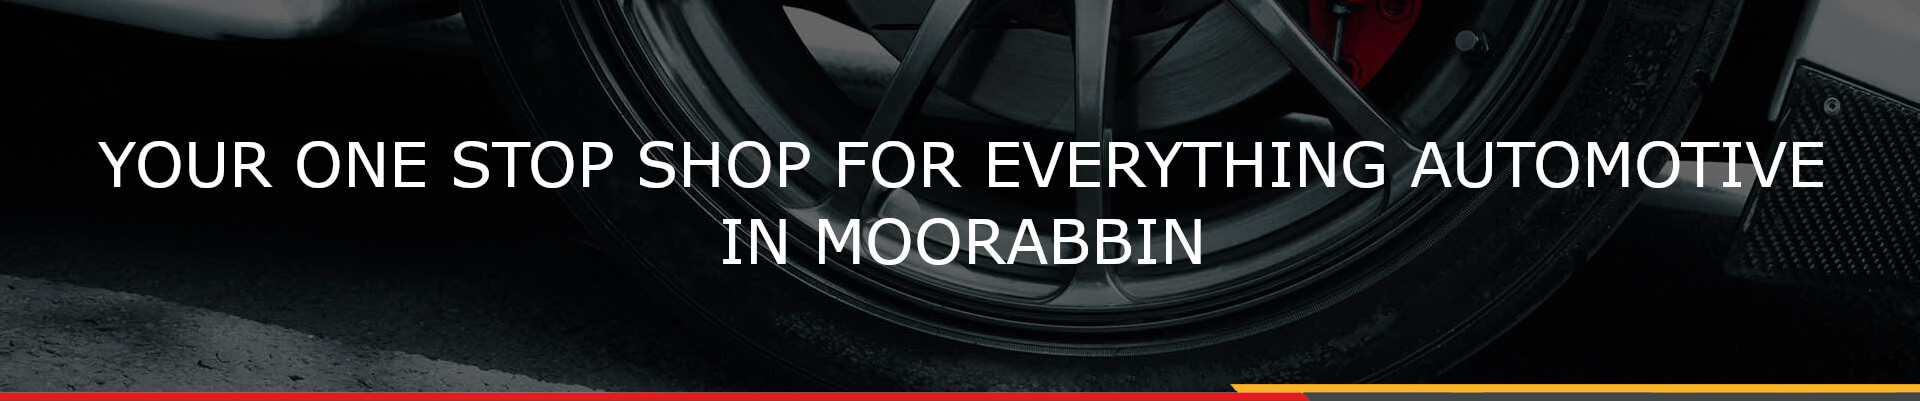 Your one stop shop for everything automotive in moorabbin.